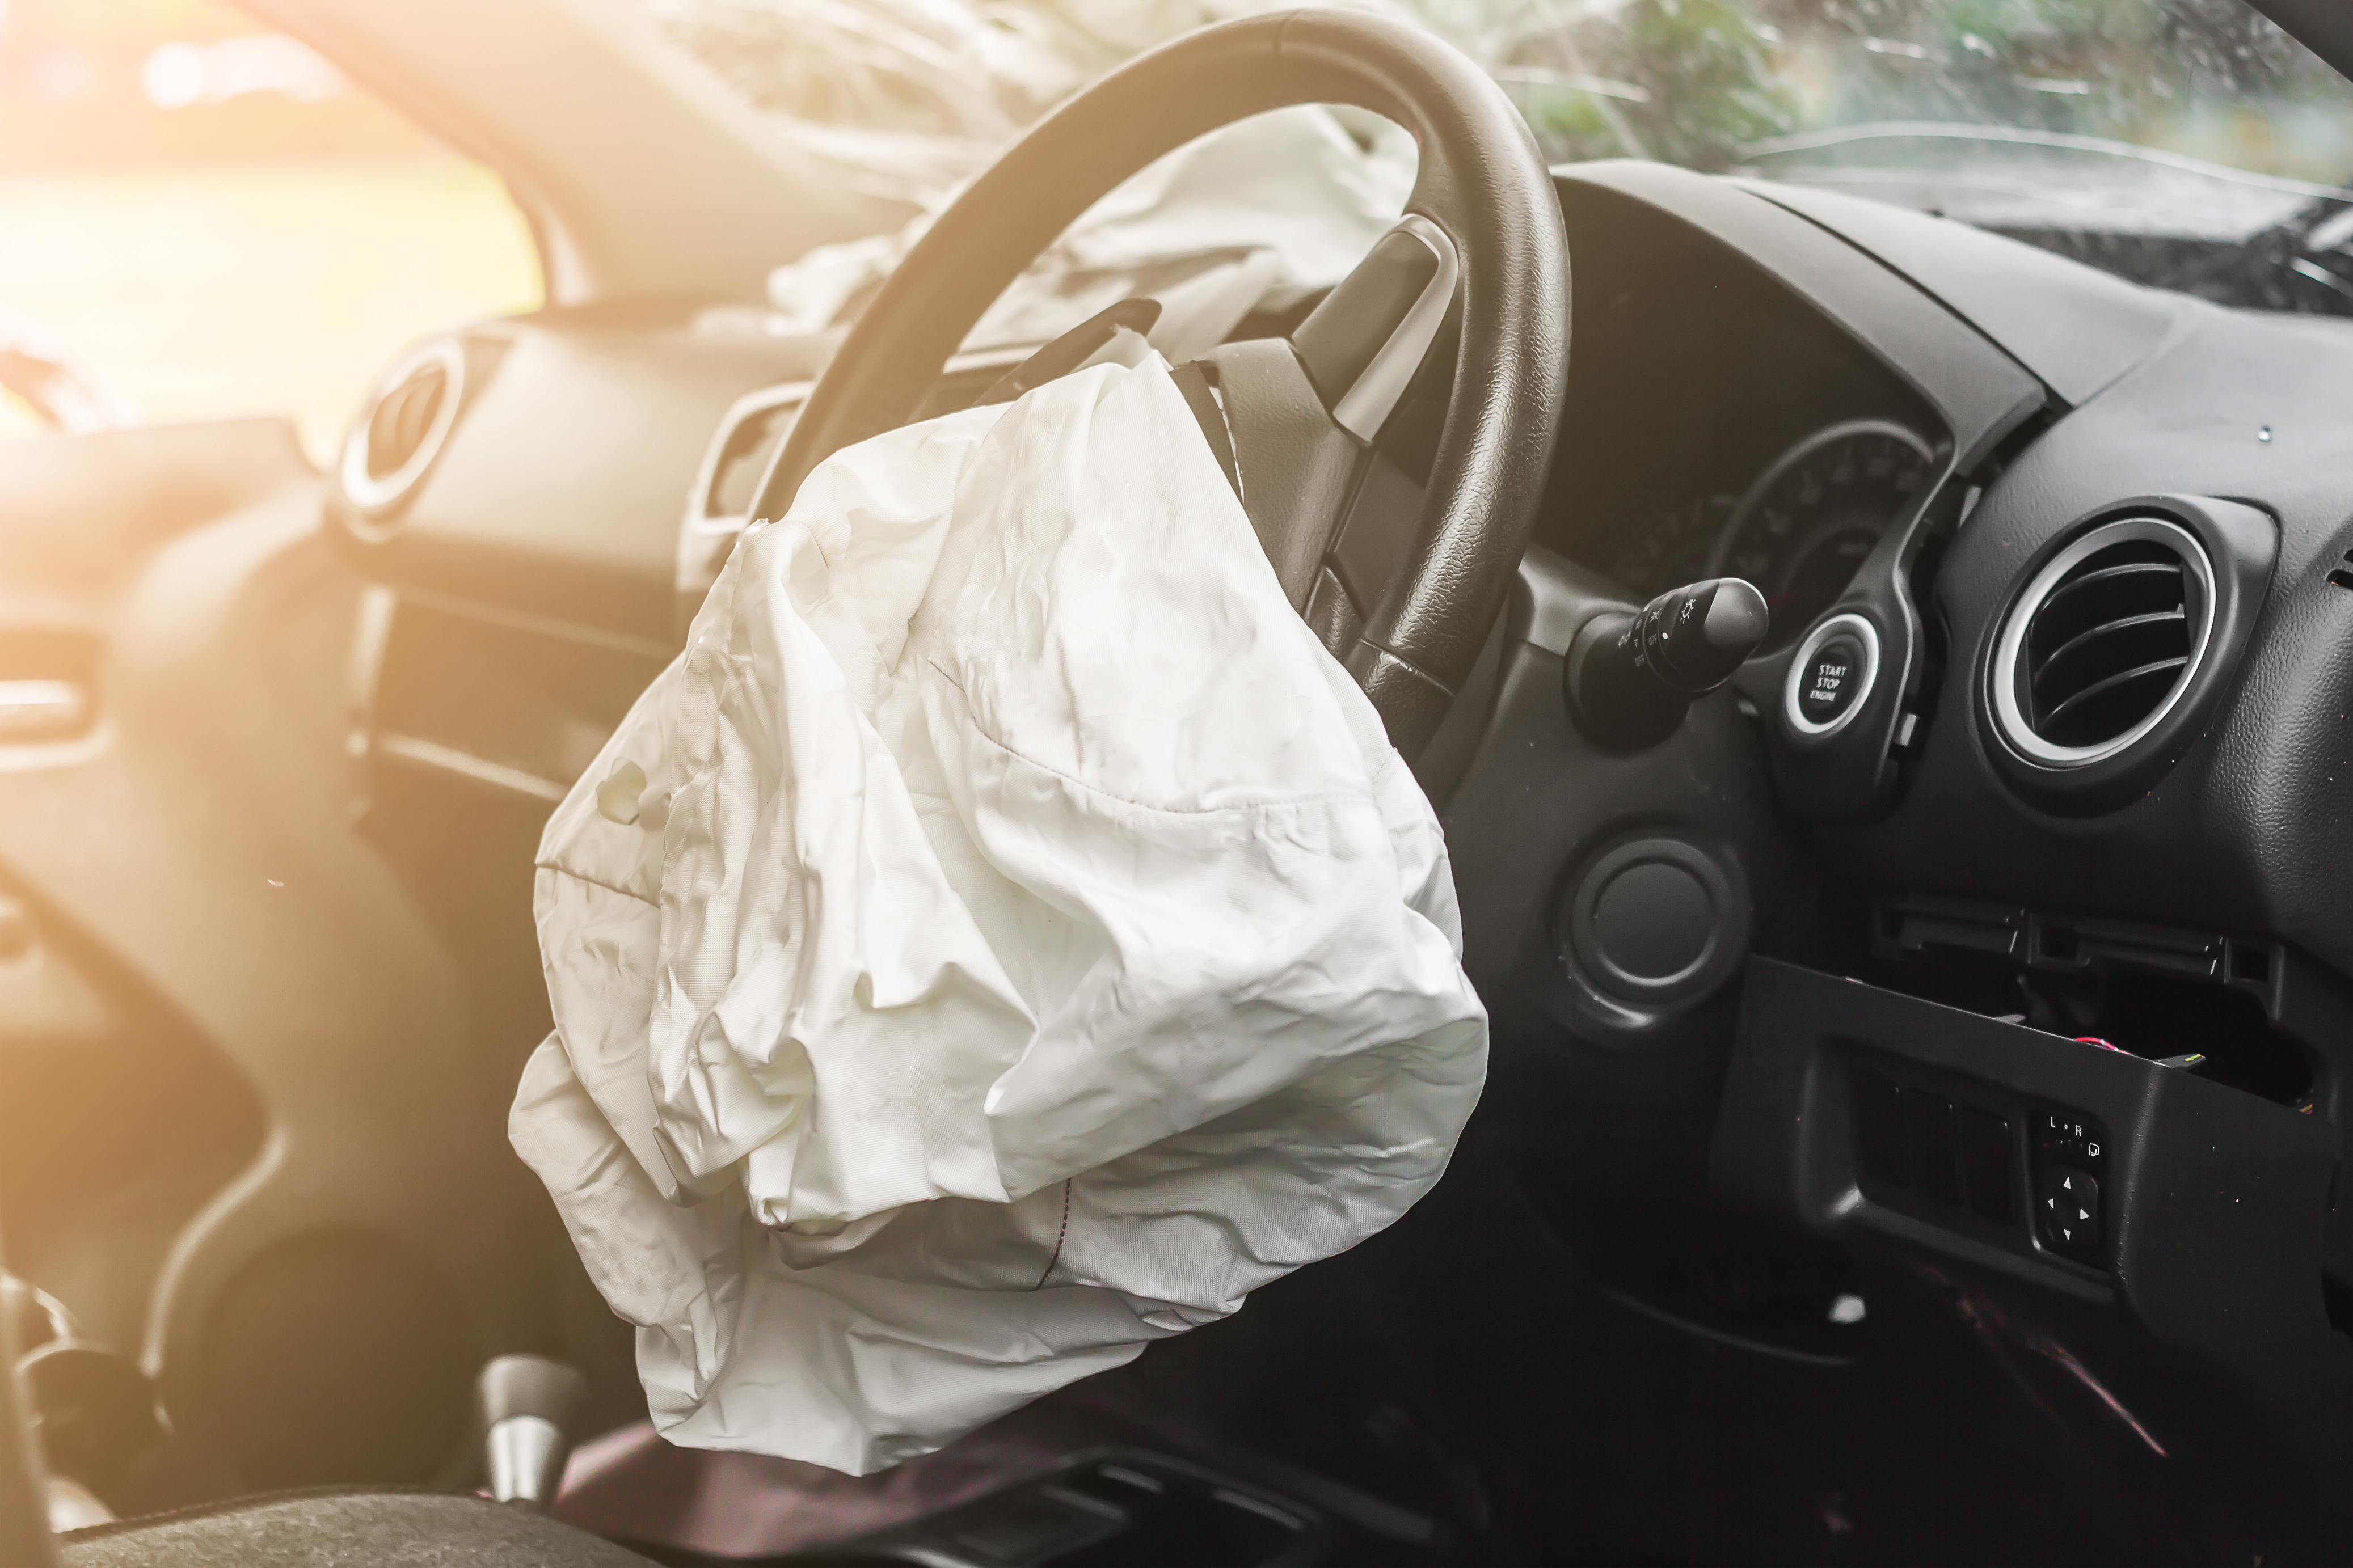 car accident airbags deployed